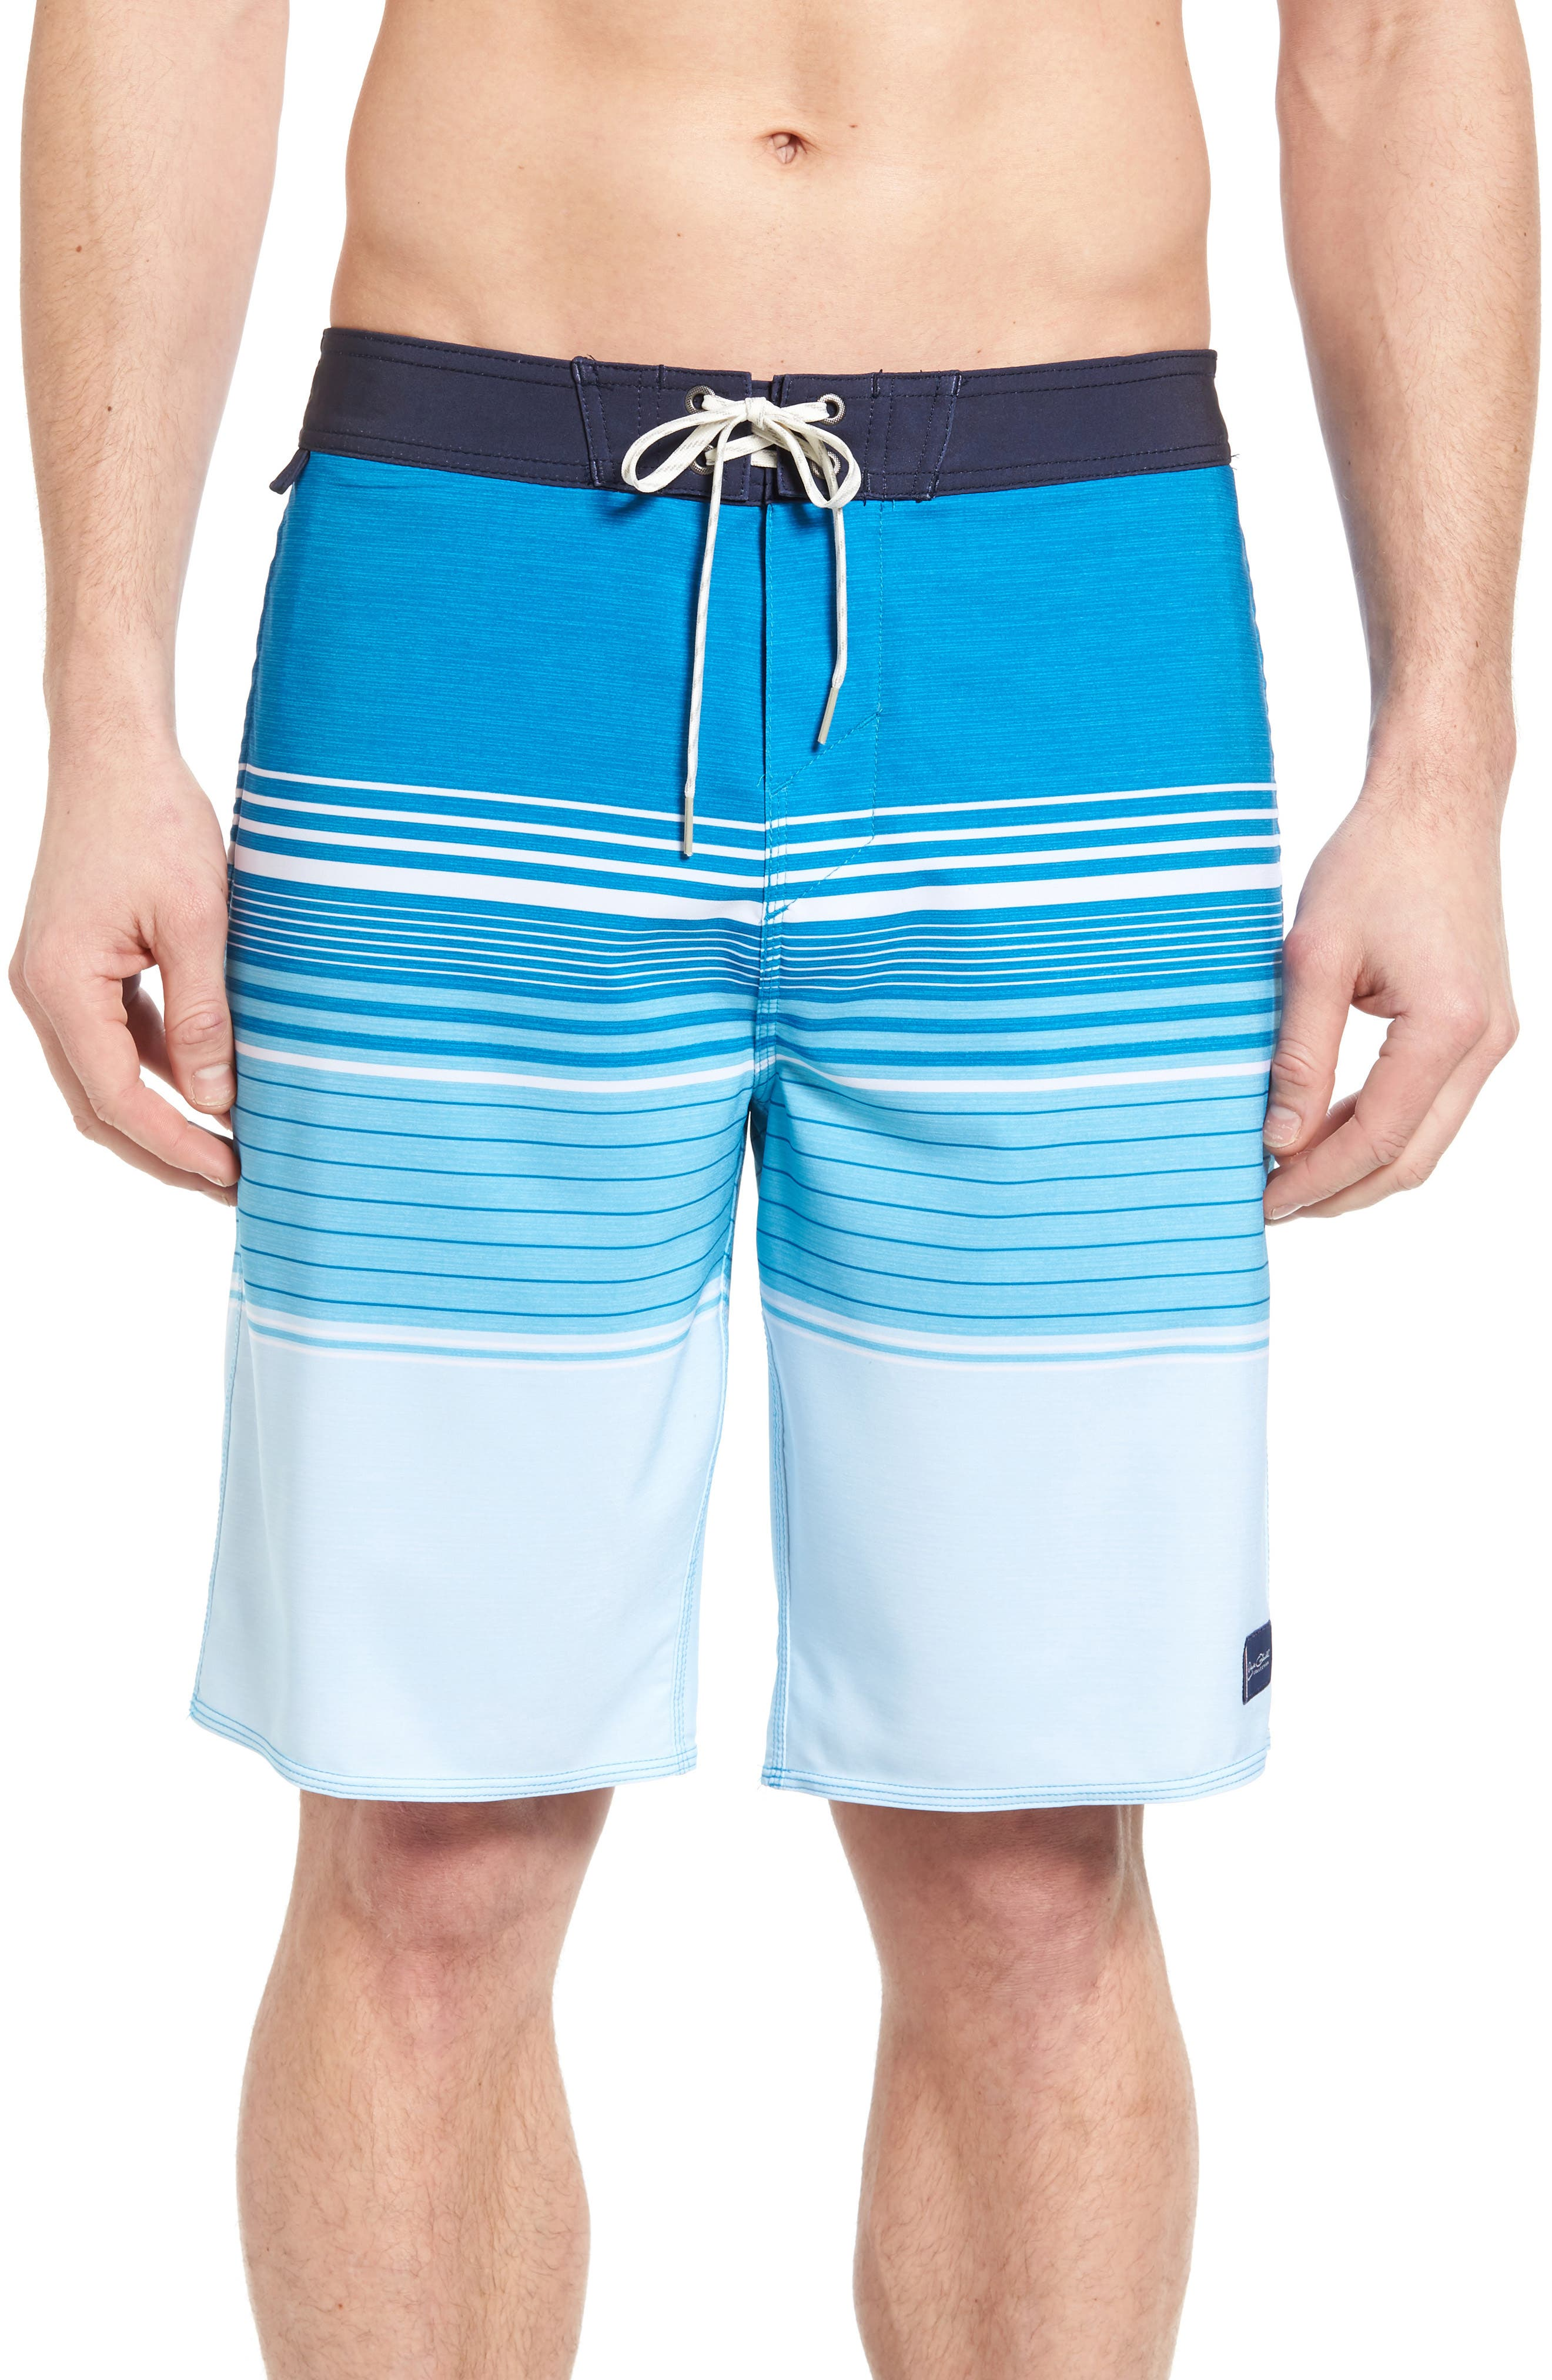 Frontiers Stretch Board Shorts,                         Main,                         color, Cobalt